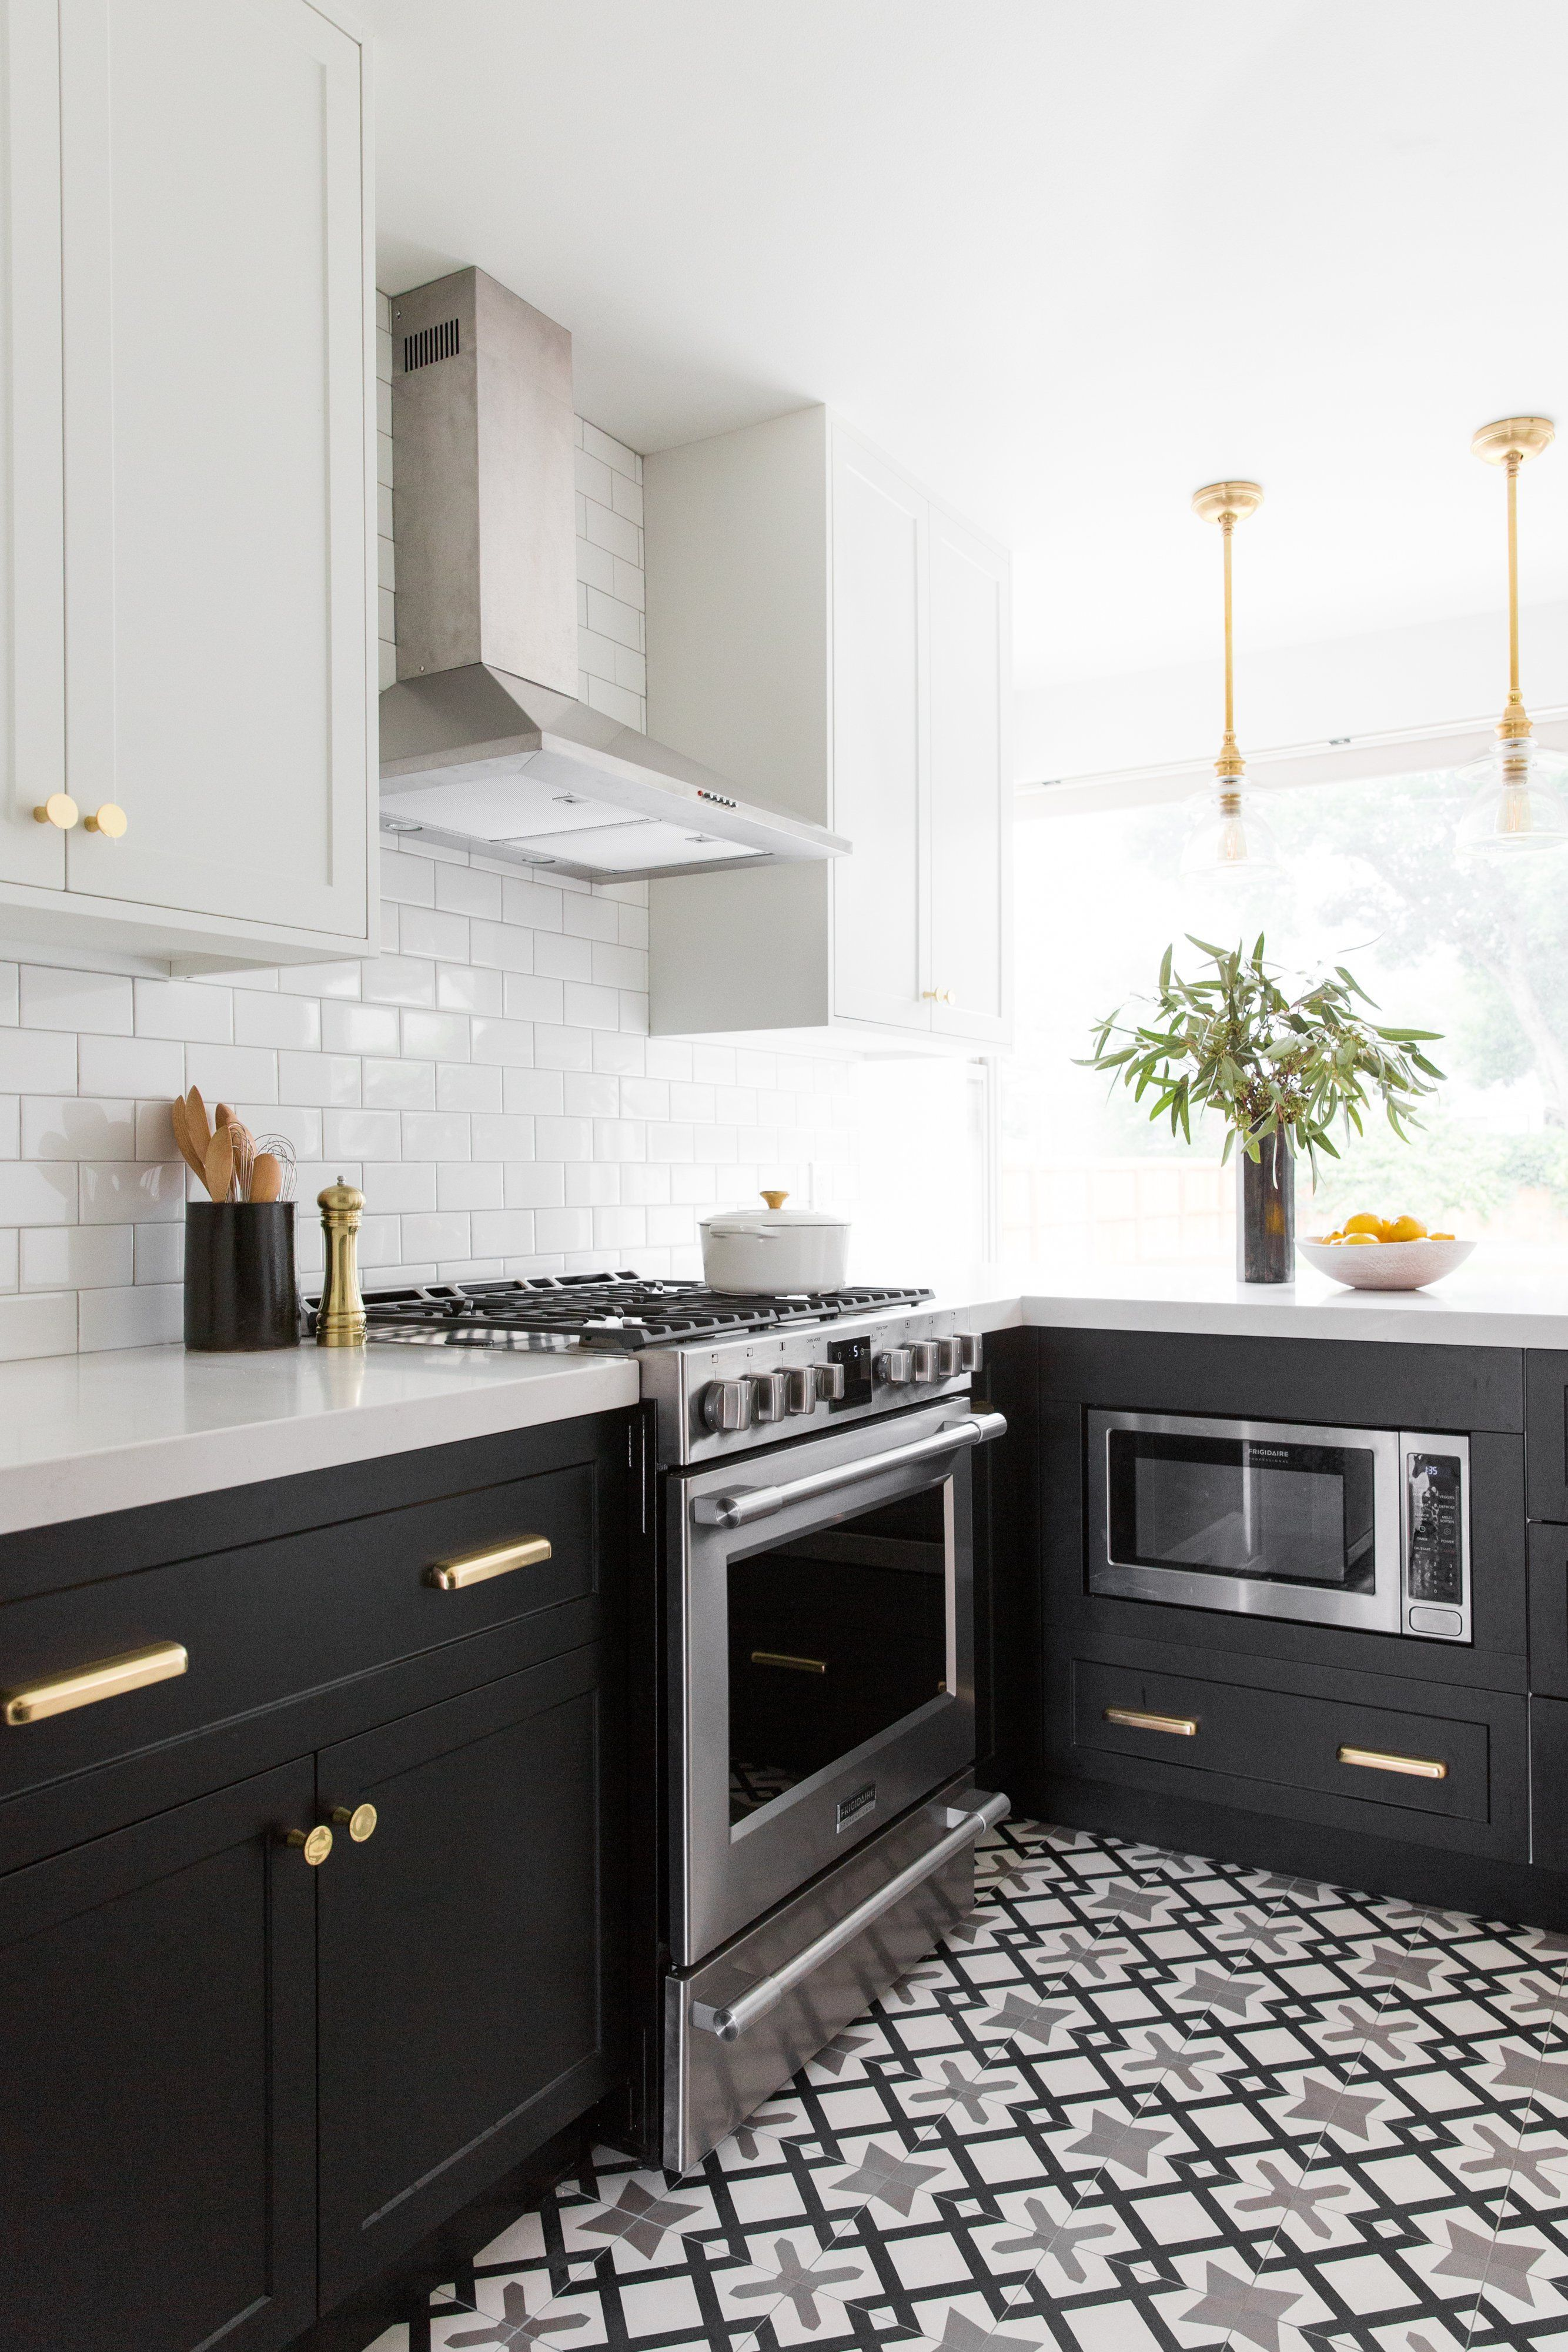 Two Toned Cabinets By Semihandmade For Ikea Kitchens Ikea Blackandwhite Diykitchen Blackan In 2020 Kitchen Remodel Small Galley Kitchen Remodel New Kitchen Cabinets